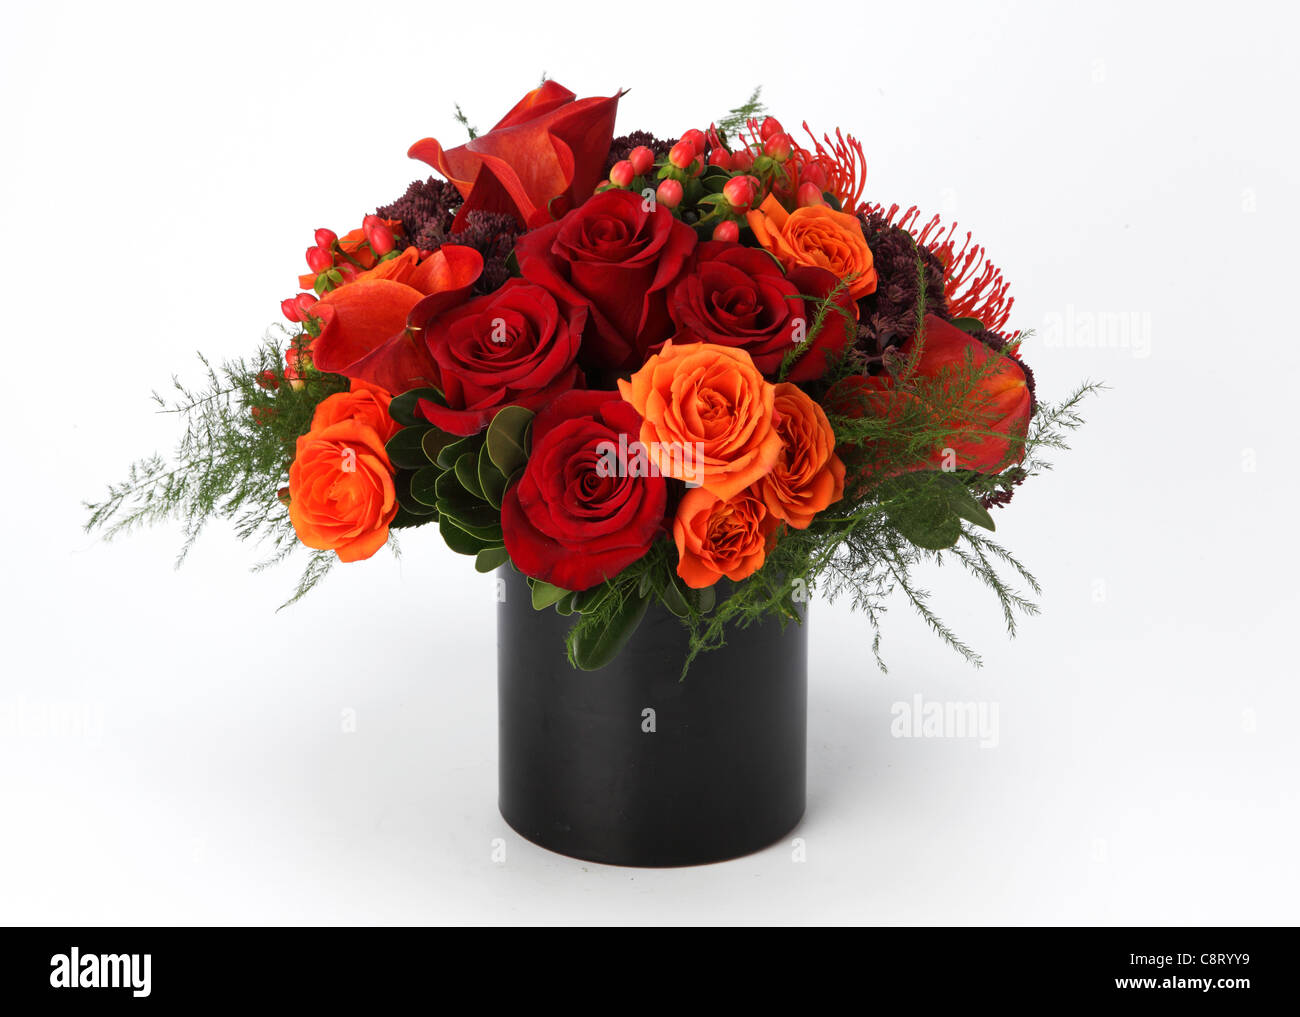 A colorful bouquet of flowers in a vase red orange roses red a colorful bouquet of flowers in a vase red orange roses red callas red proteas unknown purple sprays reviewsmspy